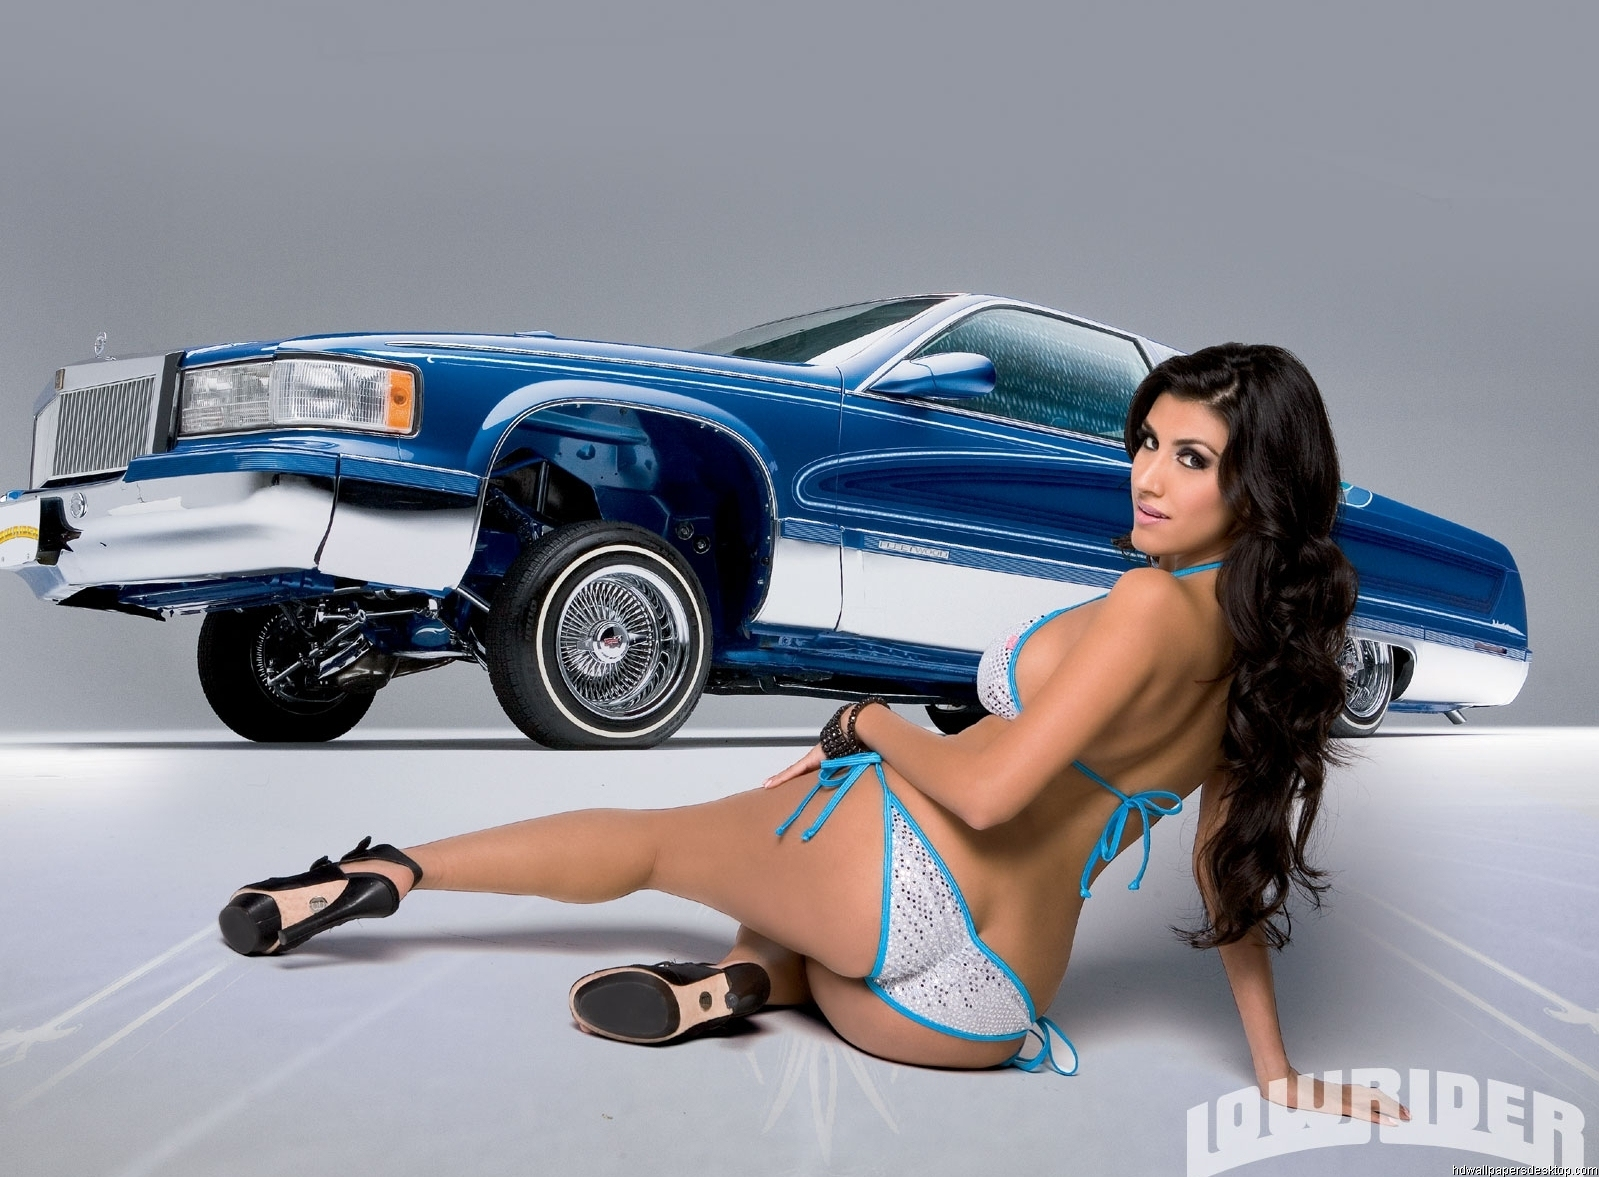 Sexy lowrider girls apologise, can